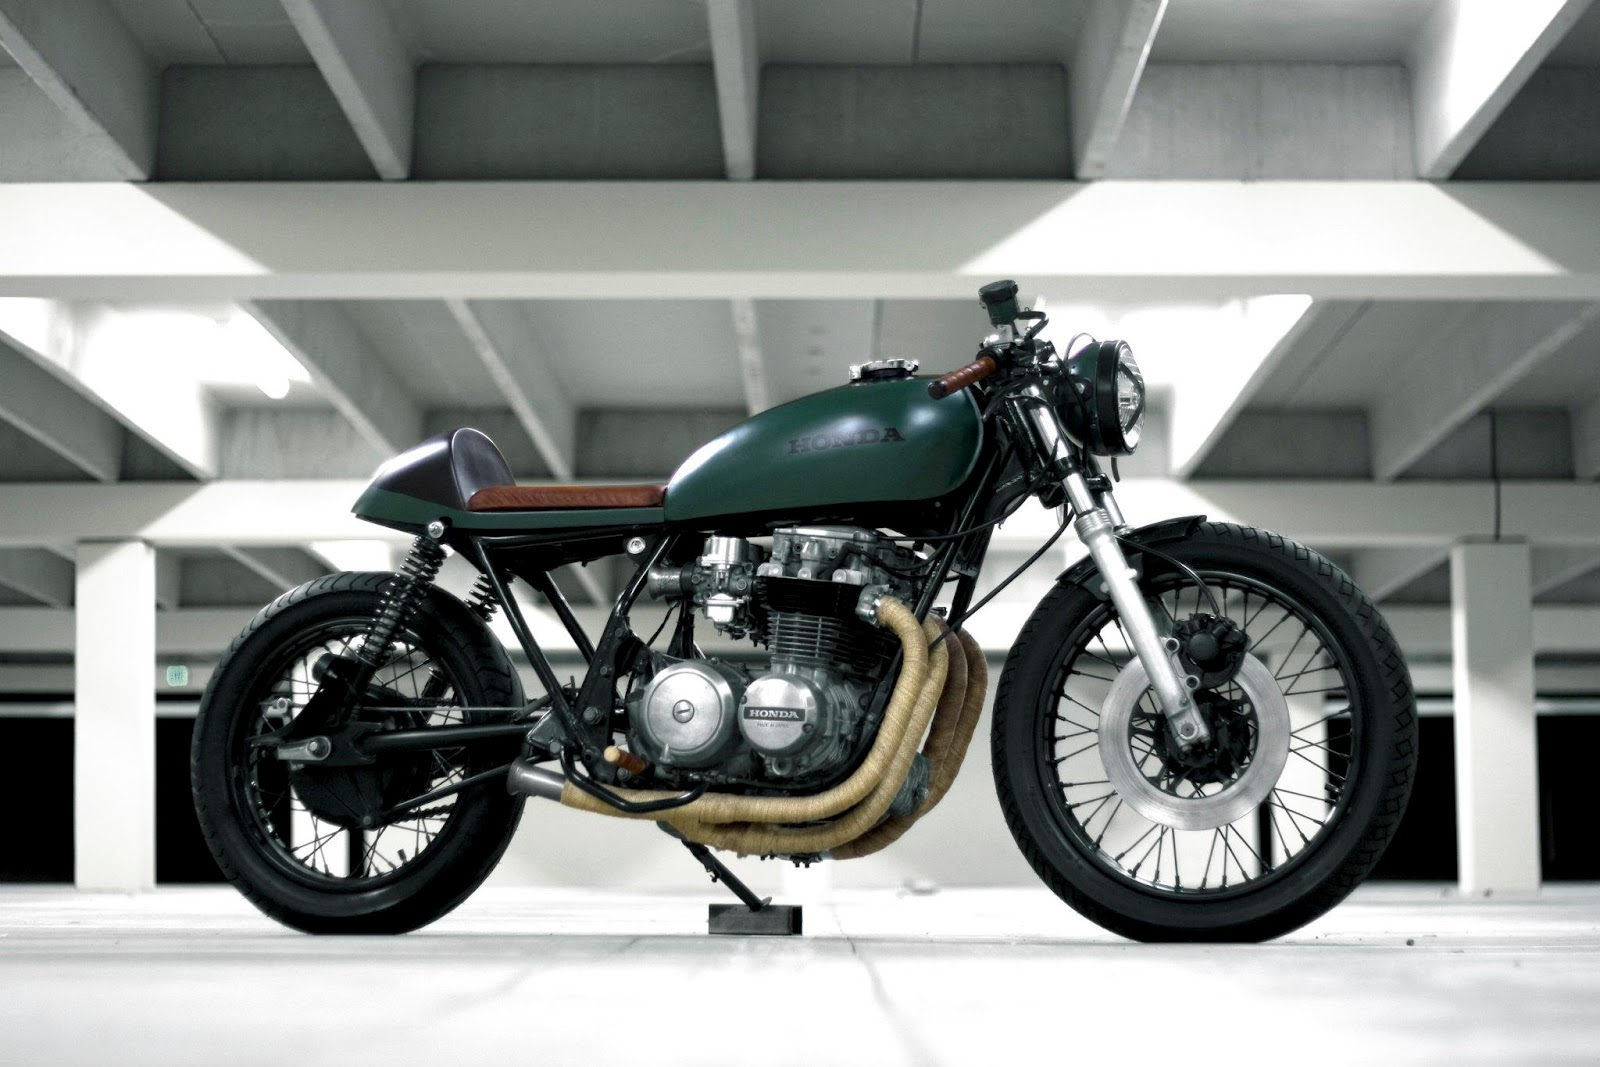 small resolution of  decided he d rather move saw introduction sc style remained an optionthrough rest run cb650 honda cb650 service repair workshop manual 1980 onward